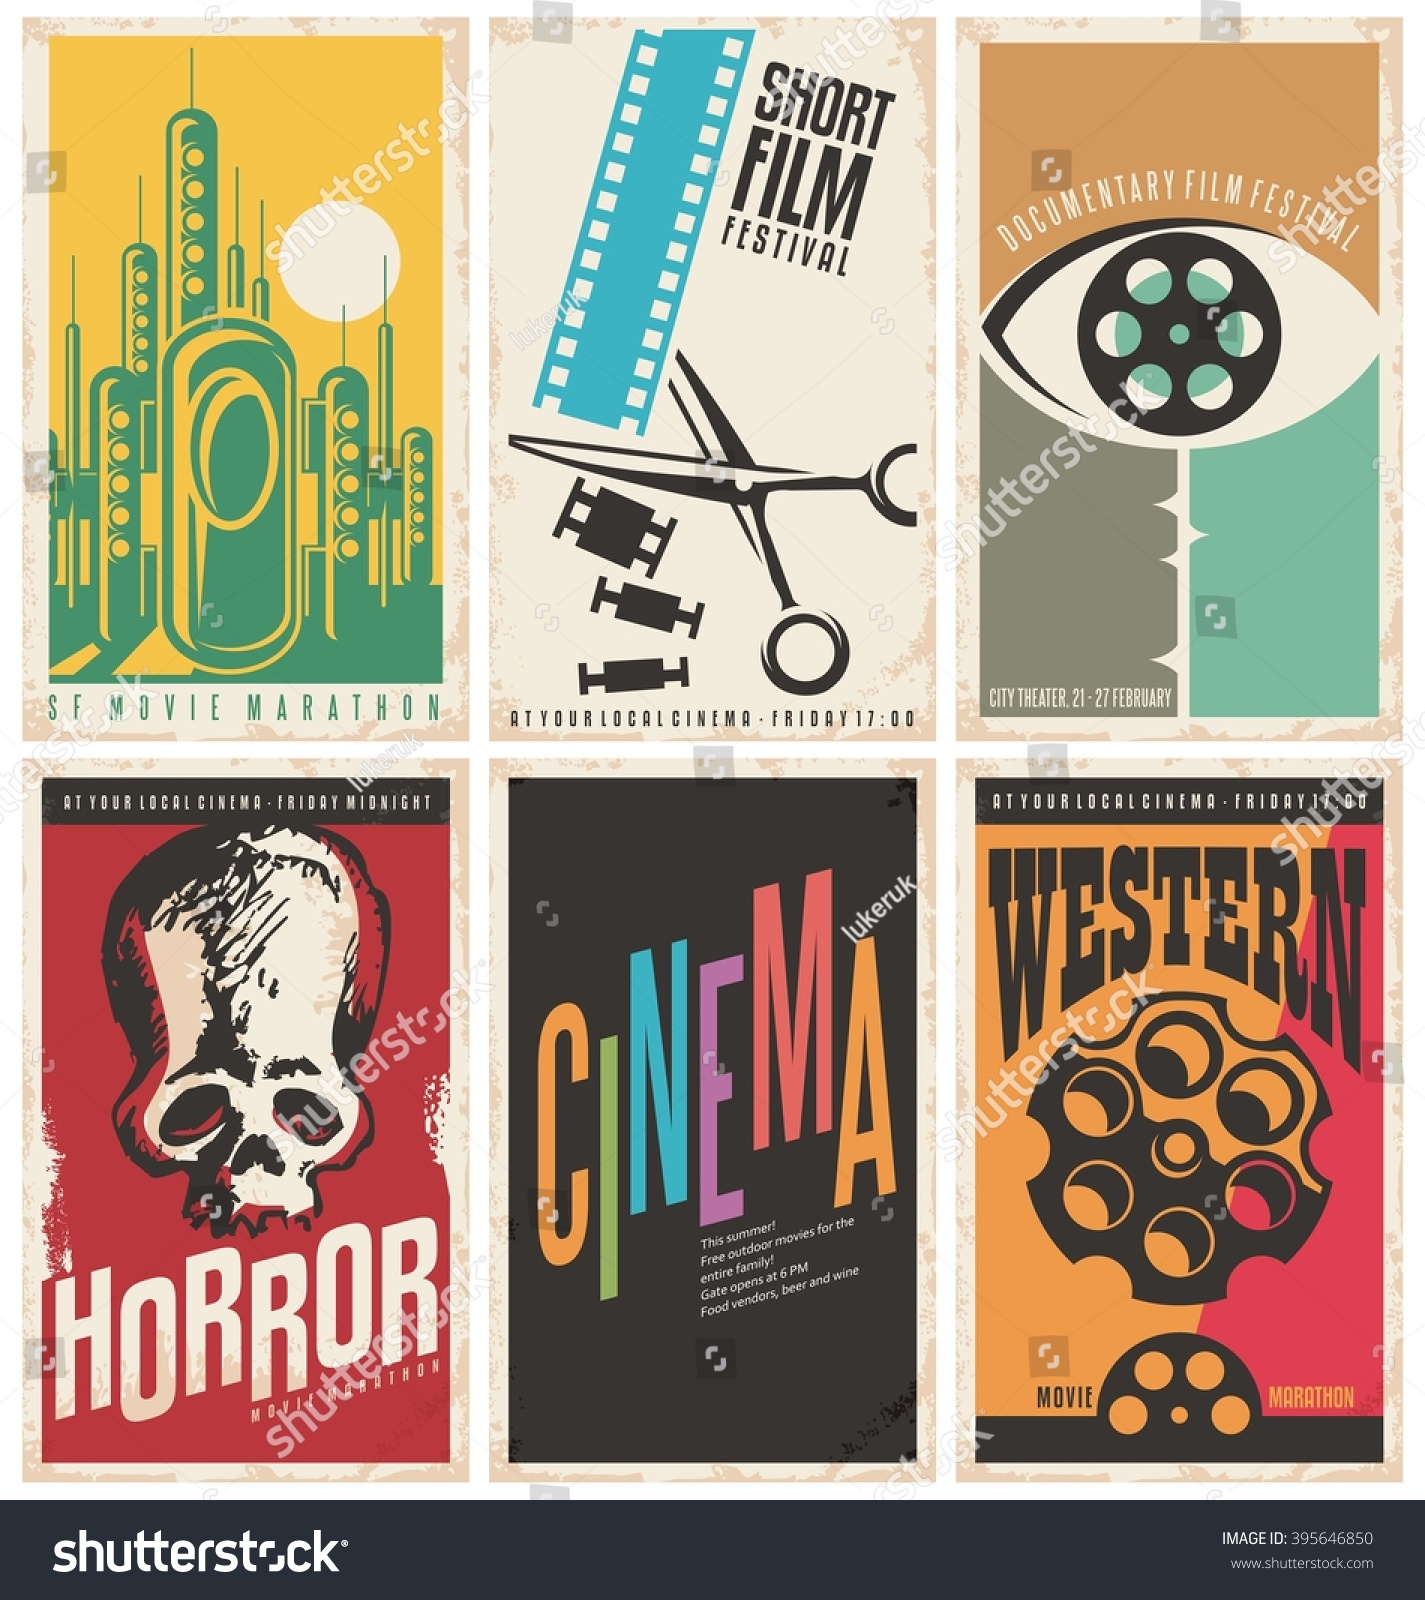 collection of retro movie poster design concepts and ideas vintage cinema posters set western - Poster Design Ideas